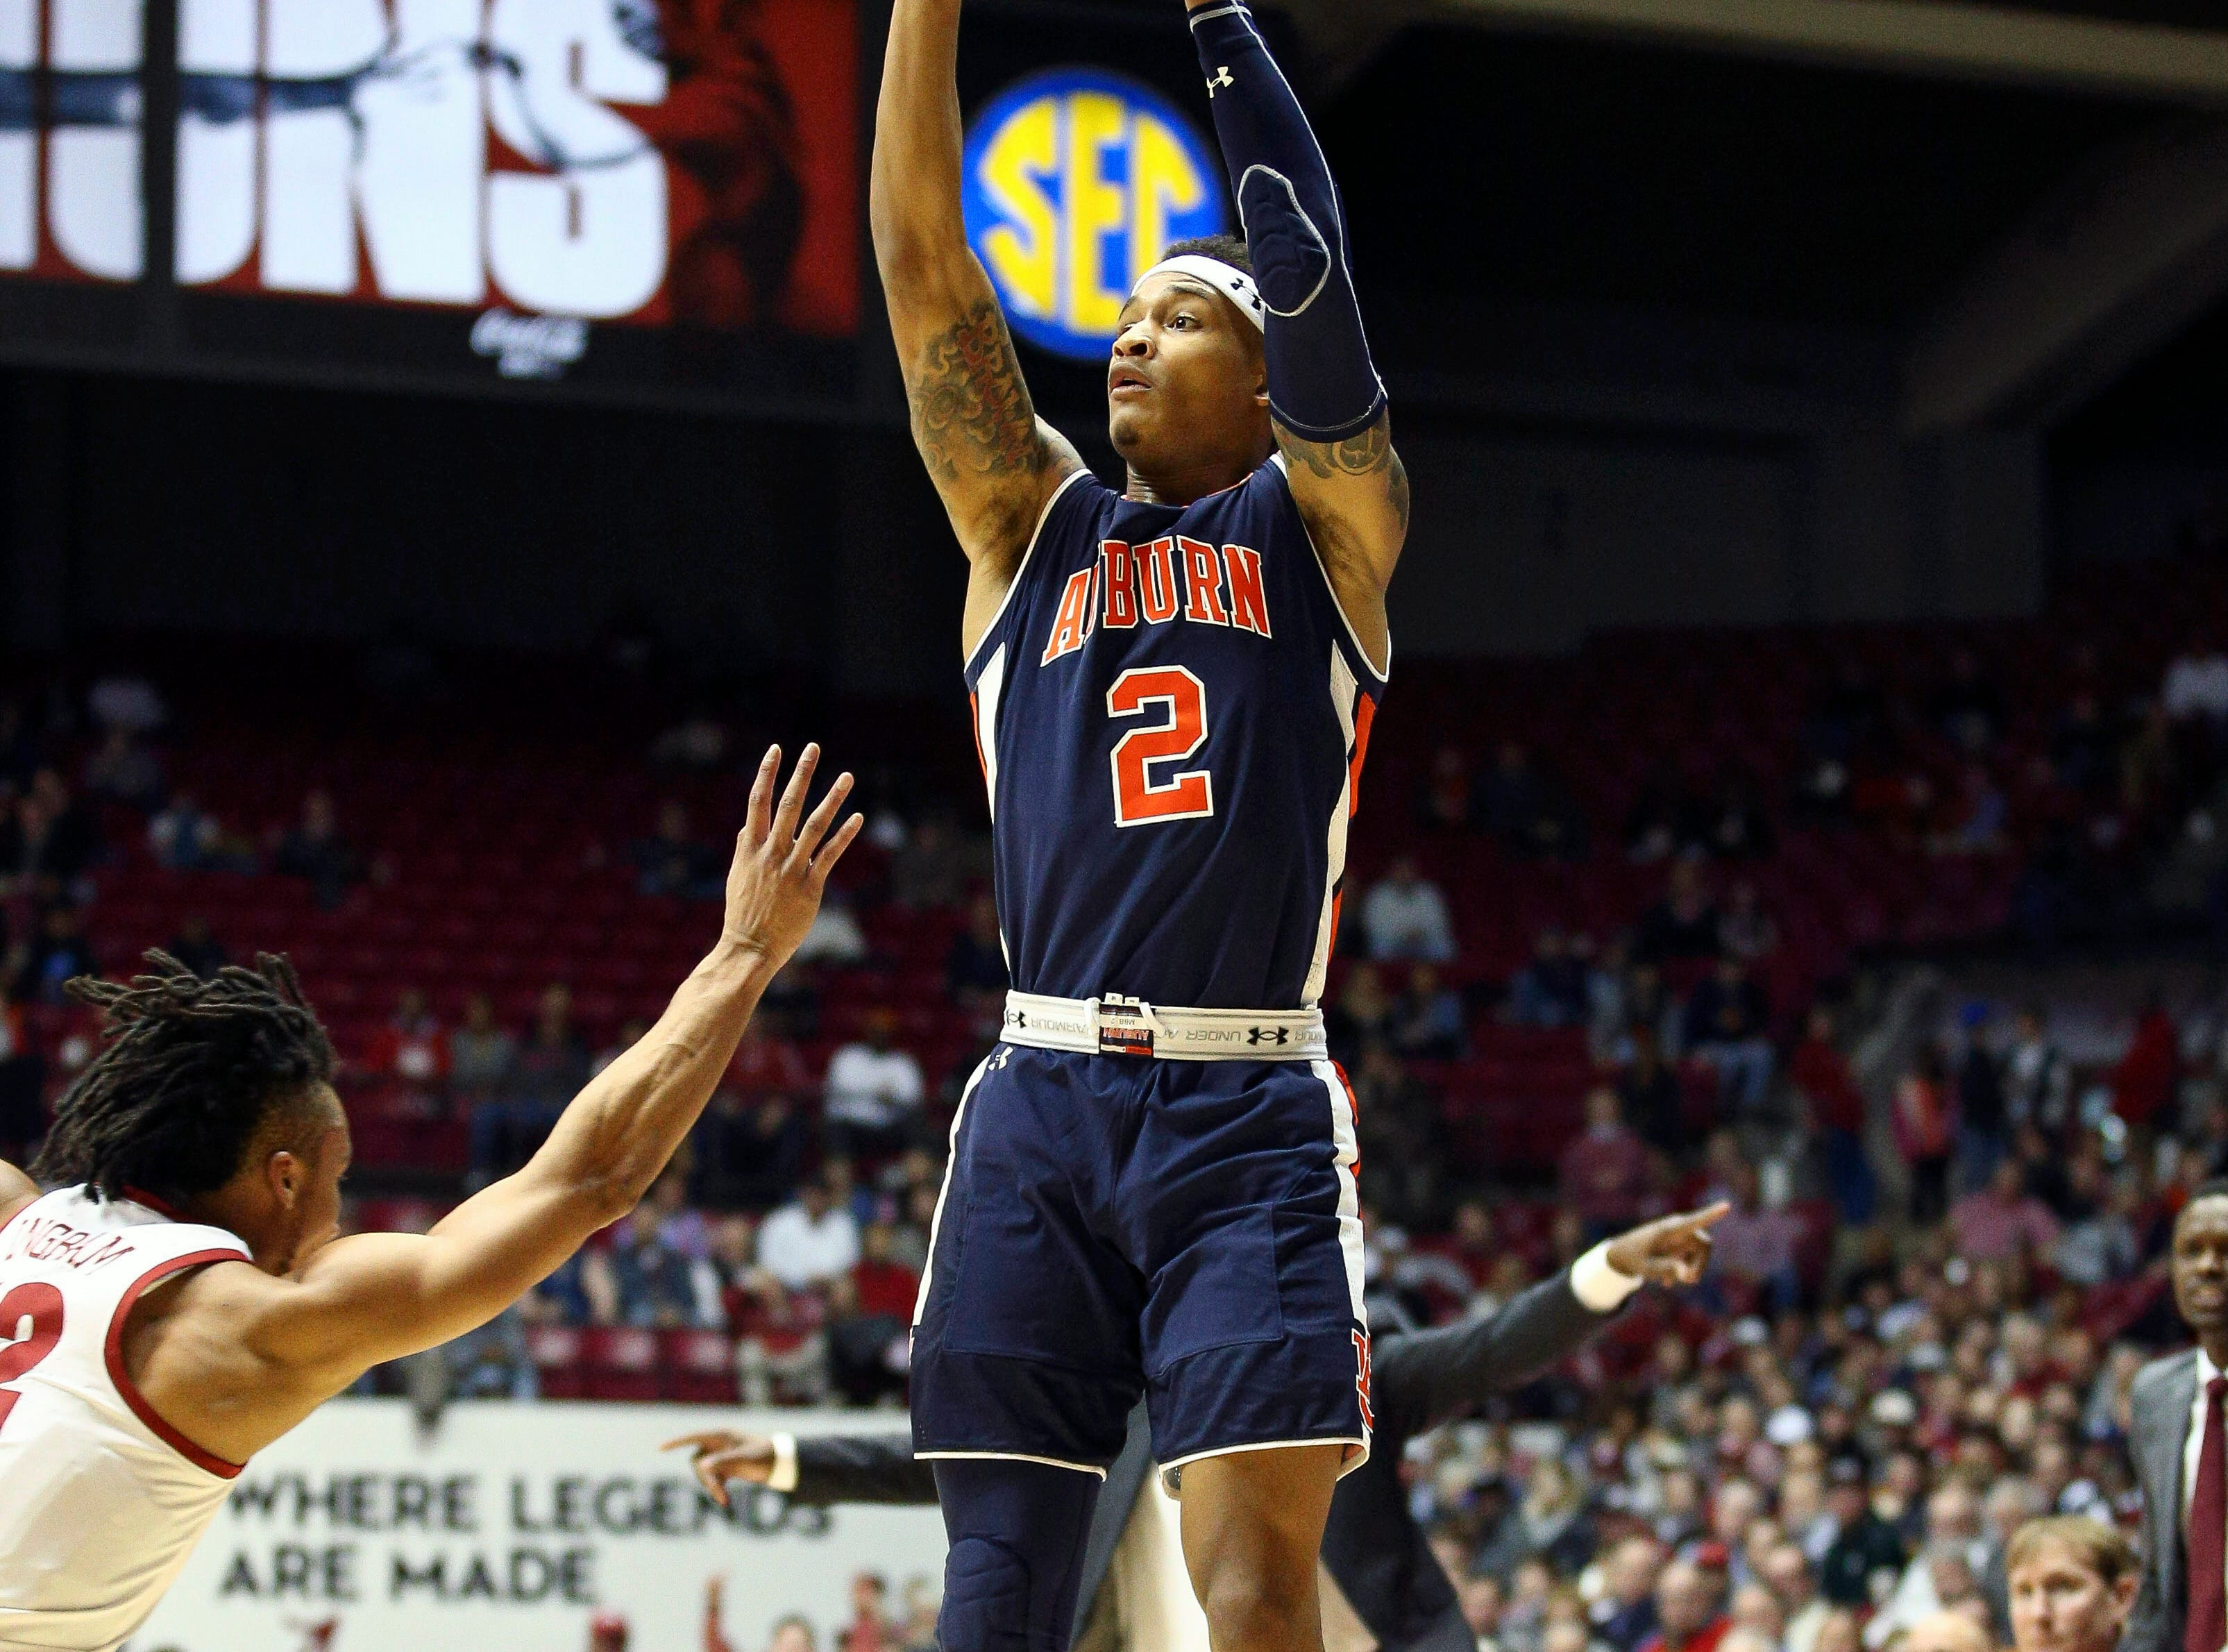 Mar 5, 2019; Tuscaloosa, AL, USA; Auburn Tigers guard Bryce Brown (2) shoots against Alabama Crimson Tide guard Dazon Ingram (12) during the first half at Coleman Coliseum. Mandatory Credit: Marvin Gentry-USA TODAY Sports